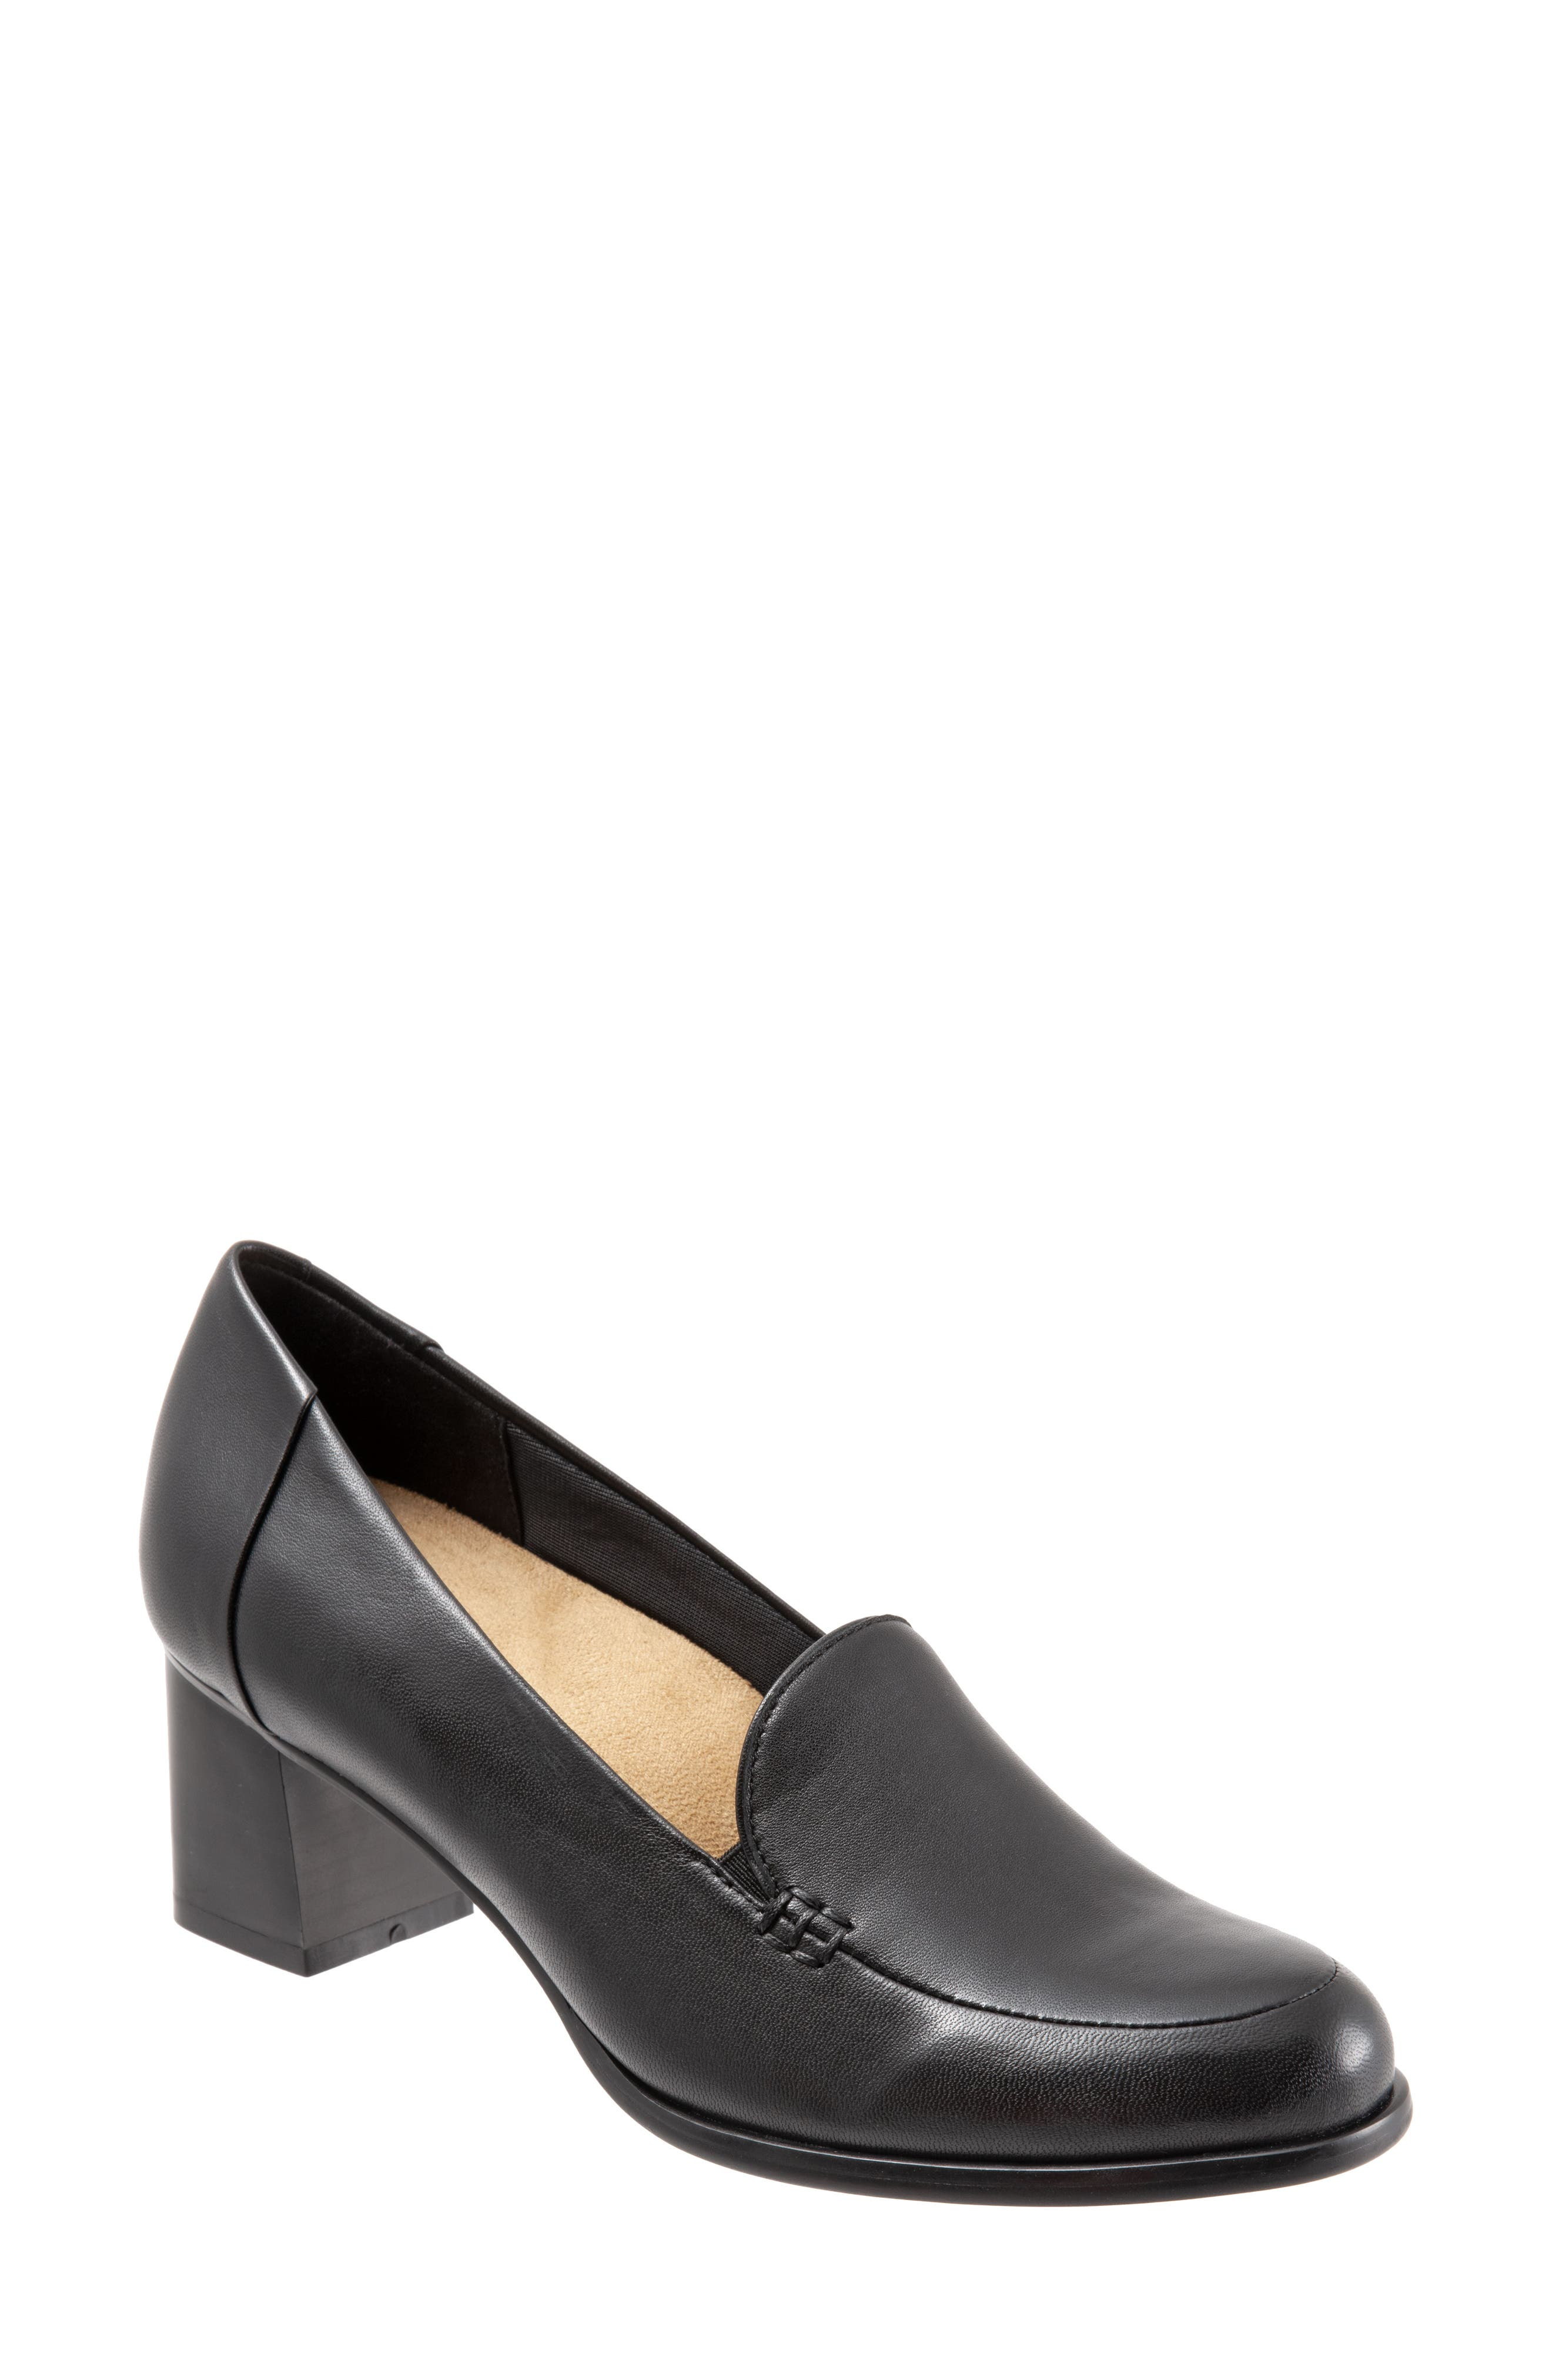 TROTTERS, Quincy Loafer Pump, Main thumbnail 1, color, BLACK LEATHER